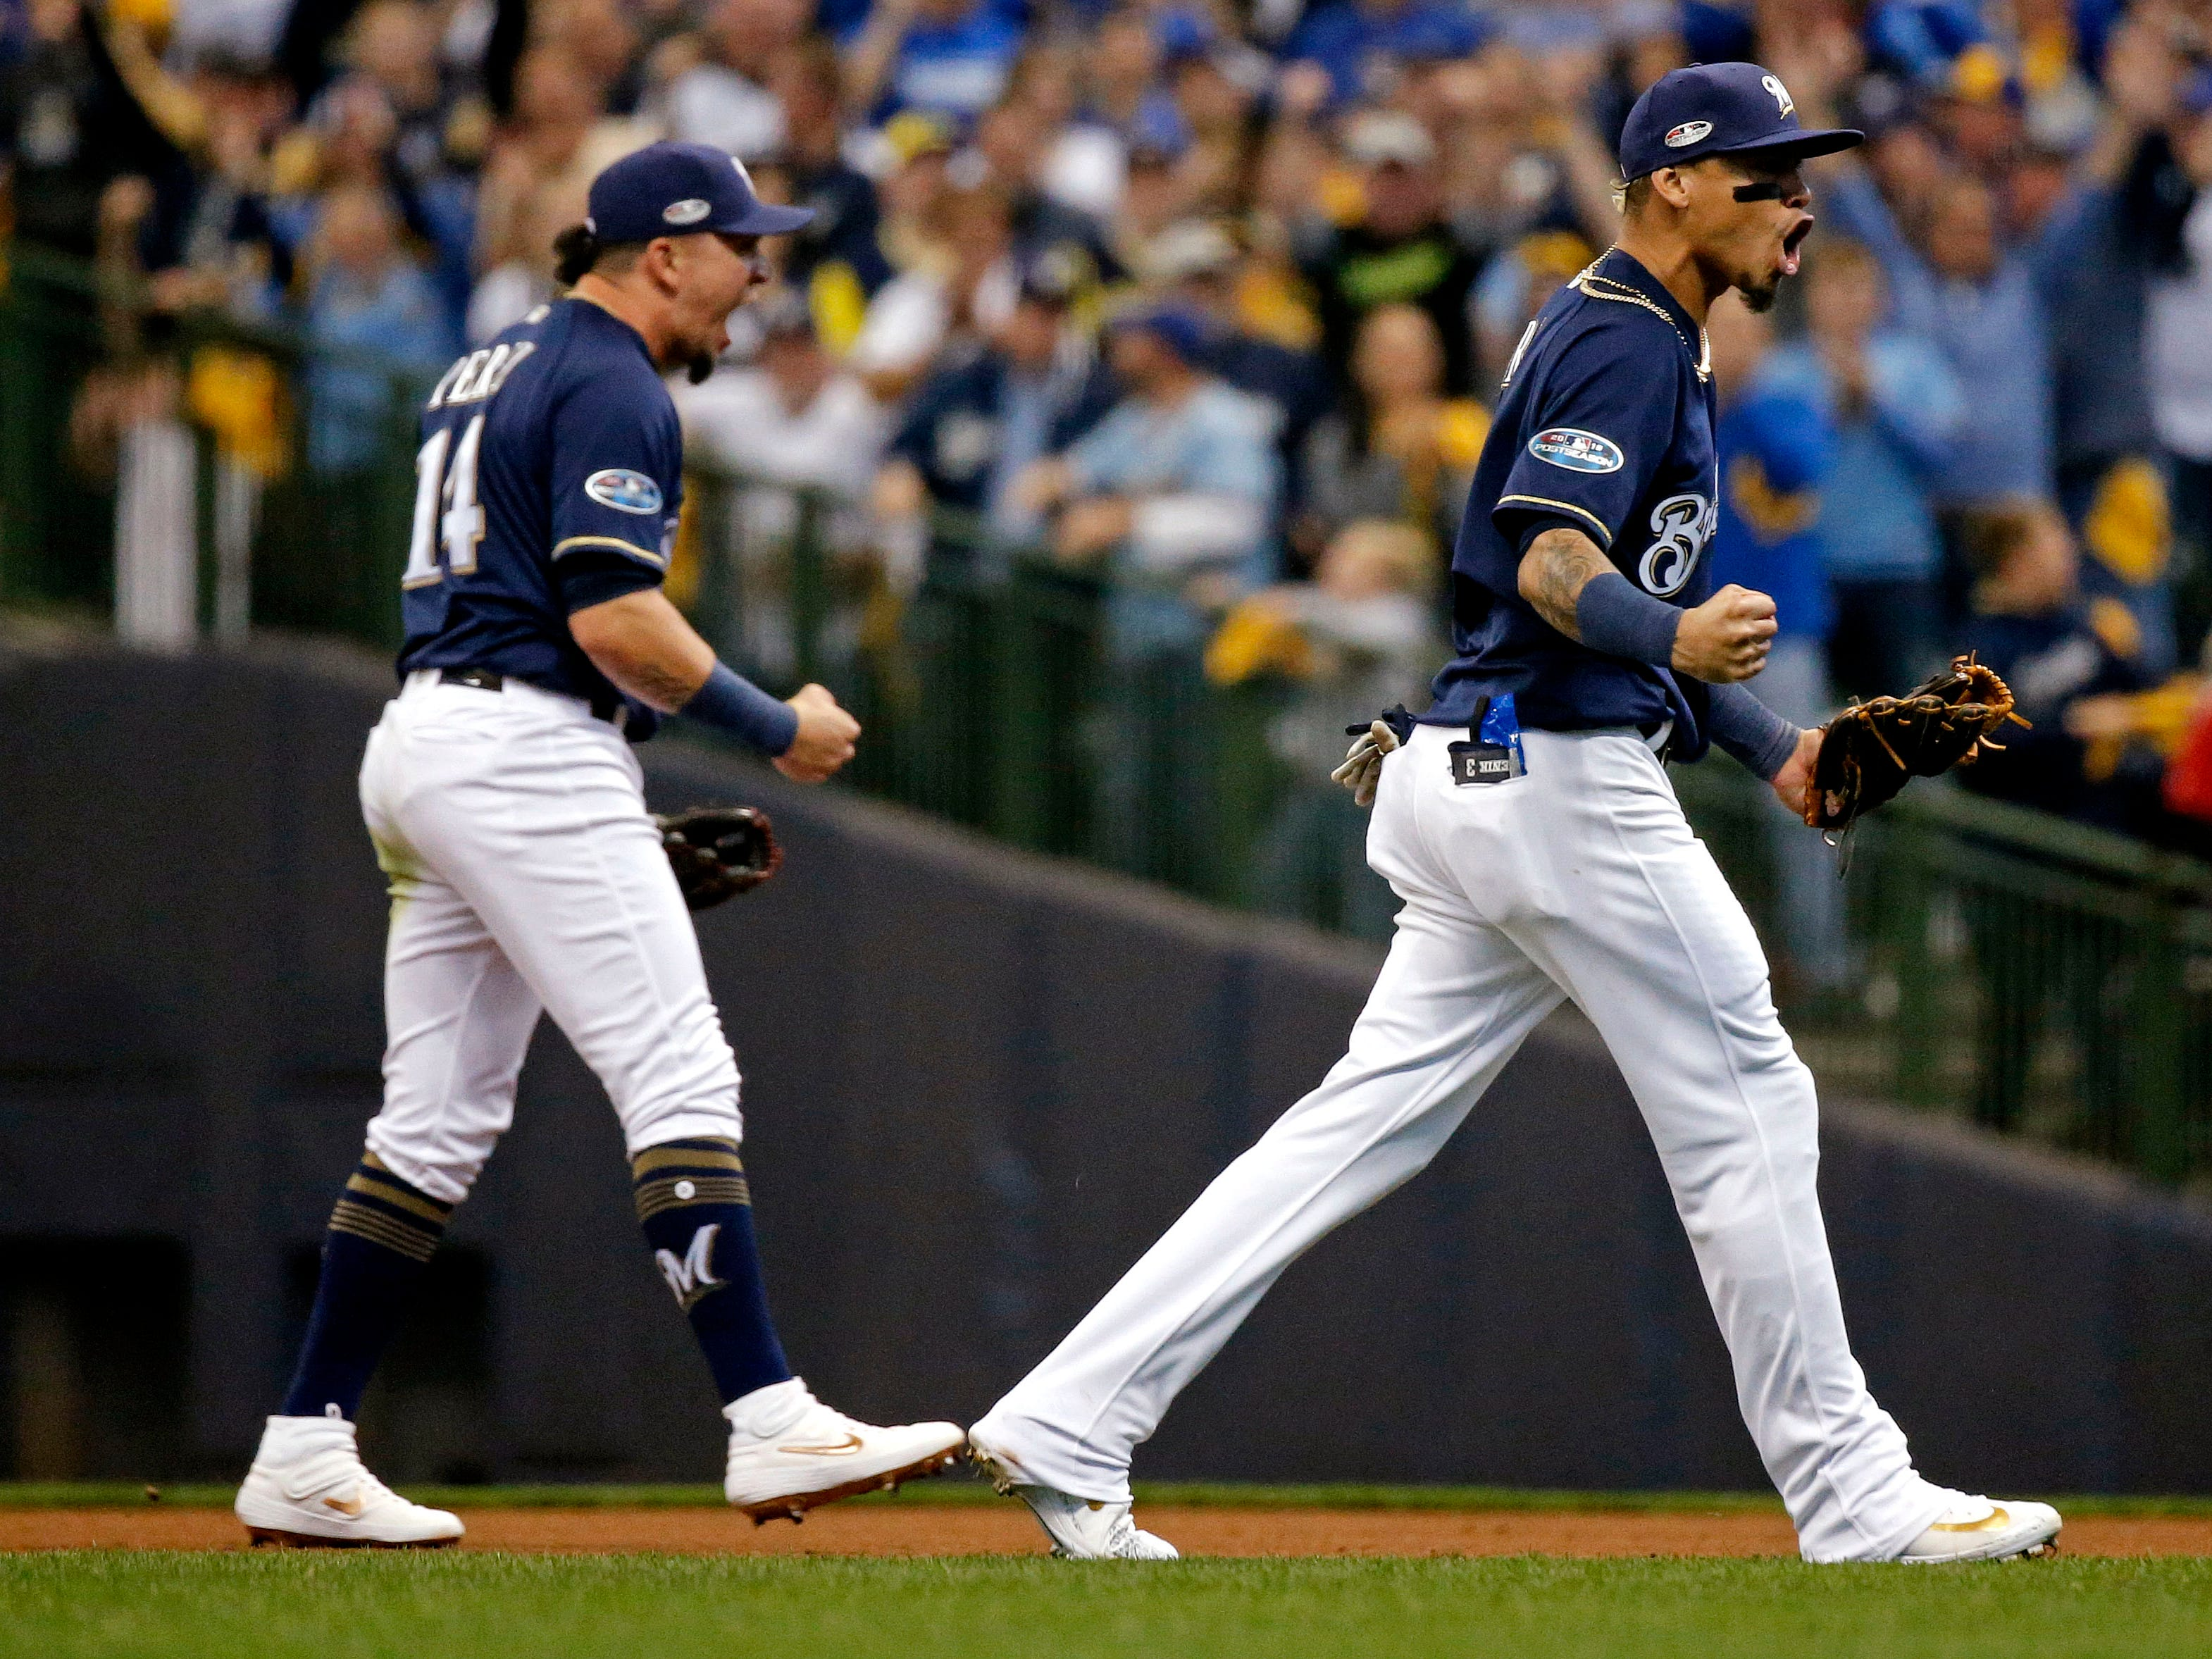 NLCS Game 2: Brewers shortstop Orlando Arcia and second baseman Hernan Perez complete an inning-ending double play in the seventh inning.